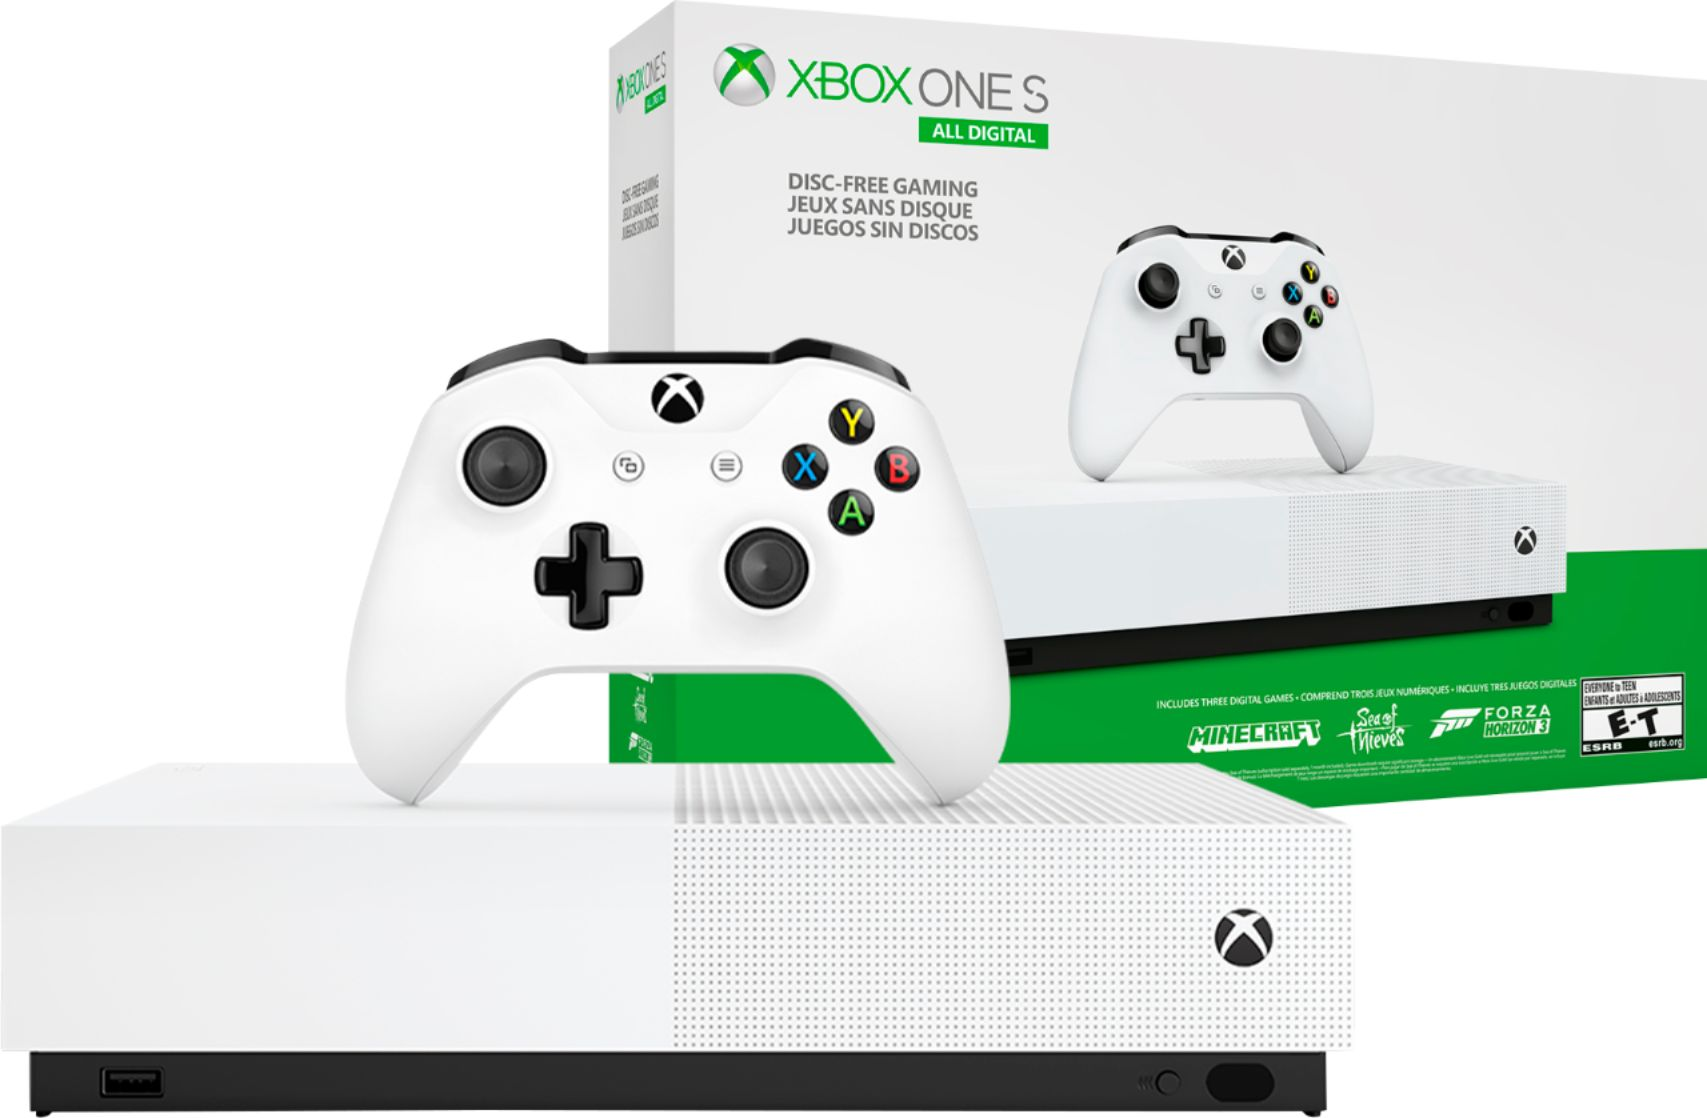 Microsoft Xbox One S 1tb All Digital Edition Console Disc Free Gaming Njp 00024 Best Buy Xbox One S 1tb Xbox One Xbox One S